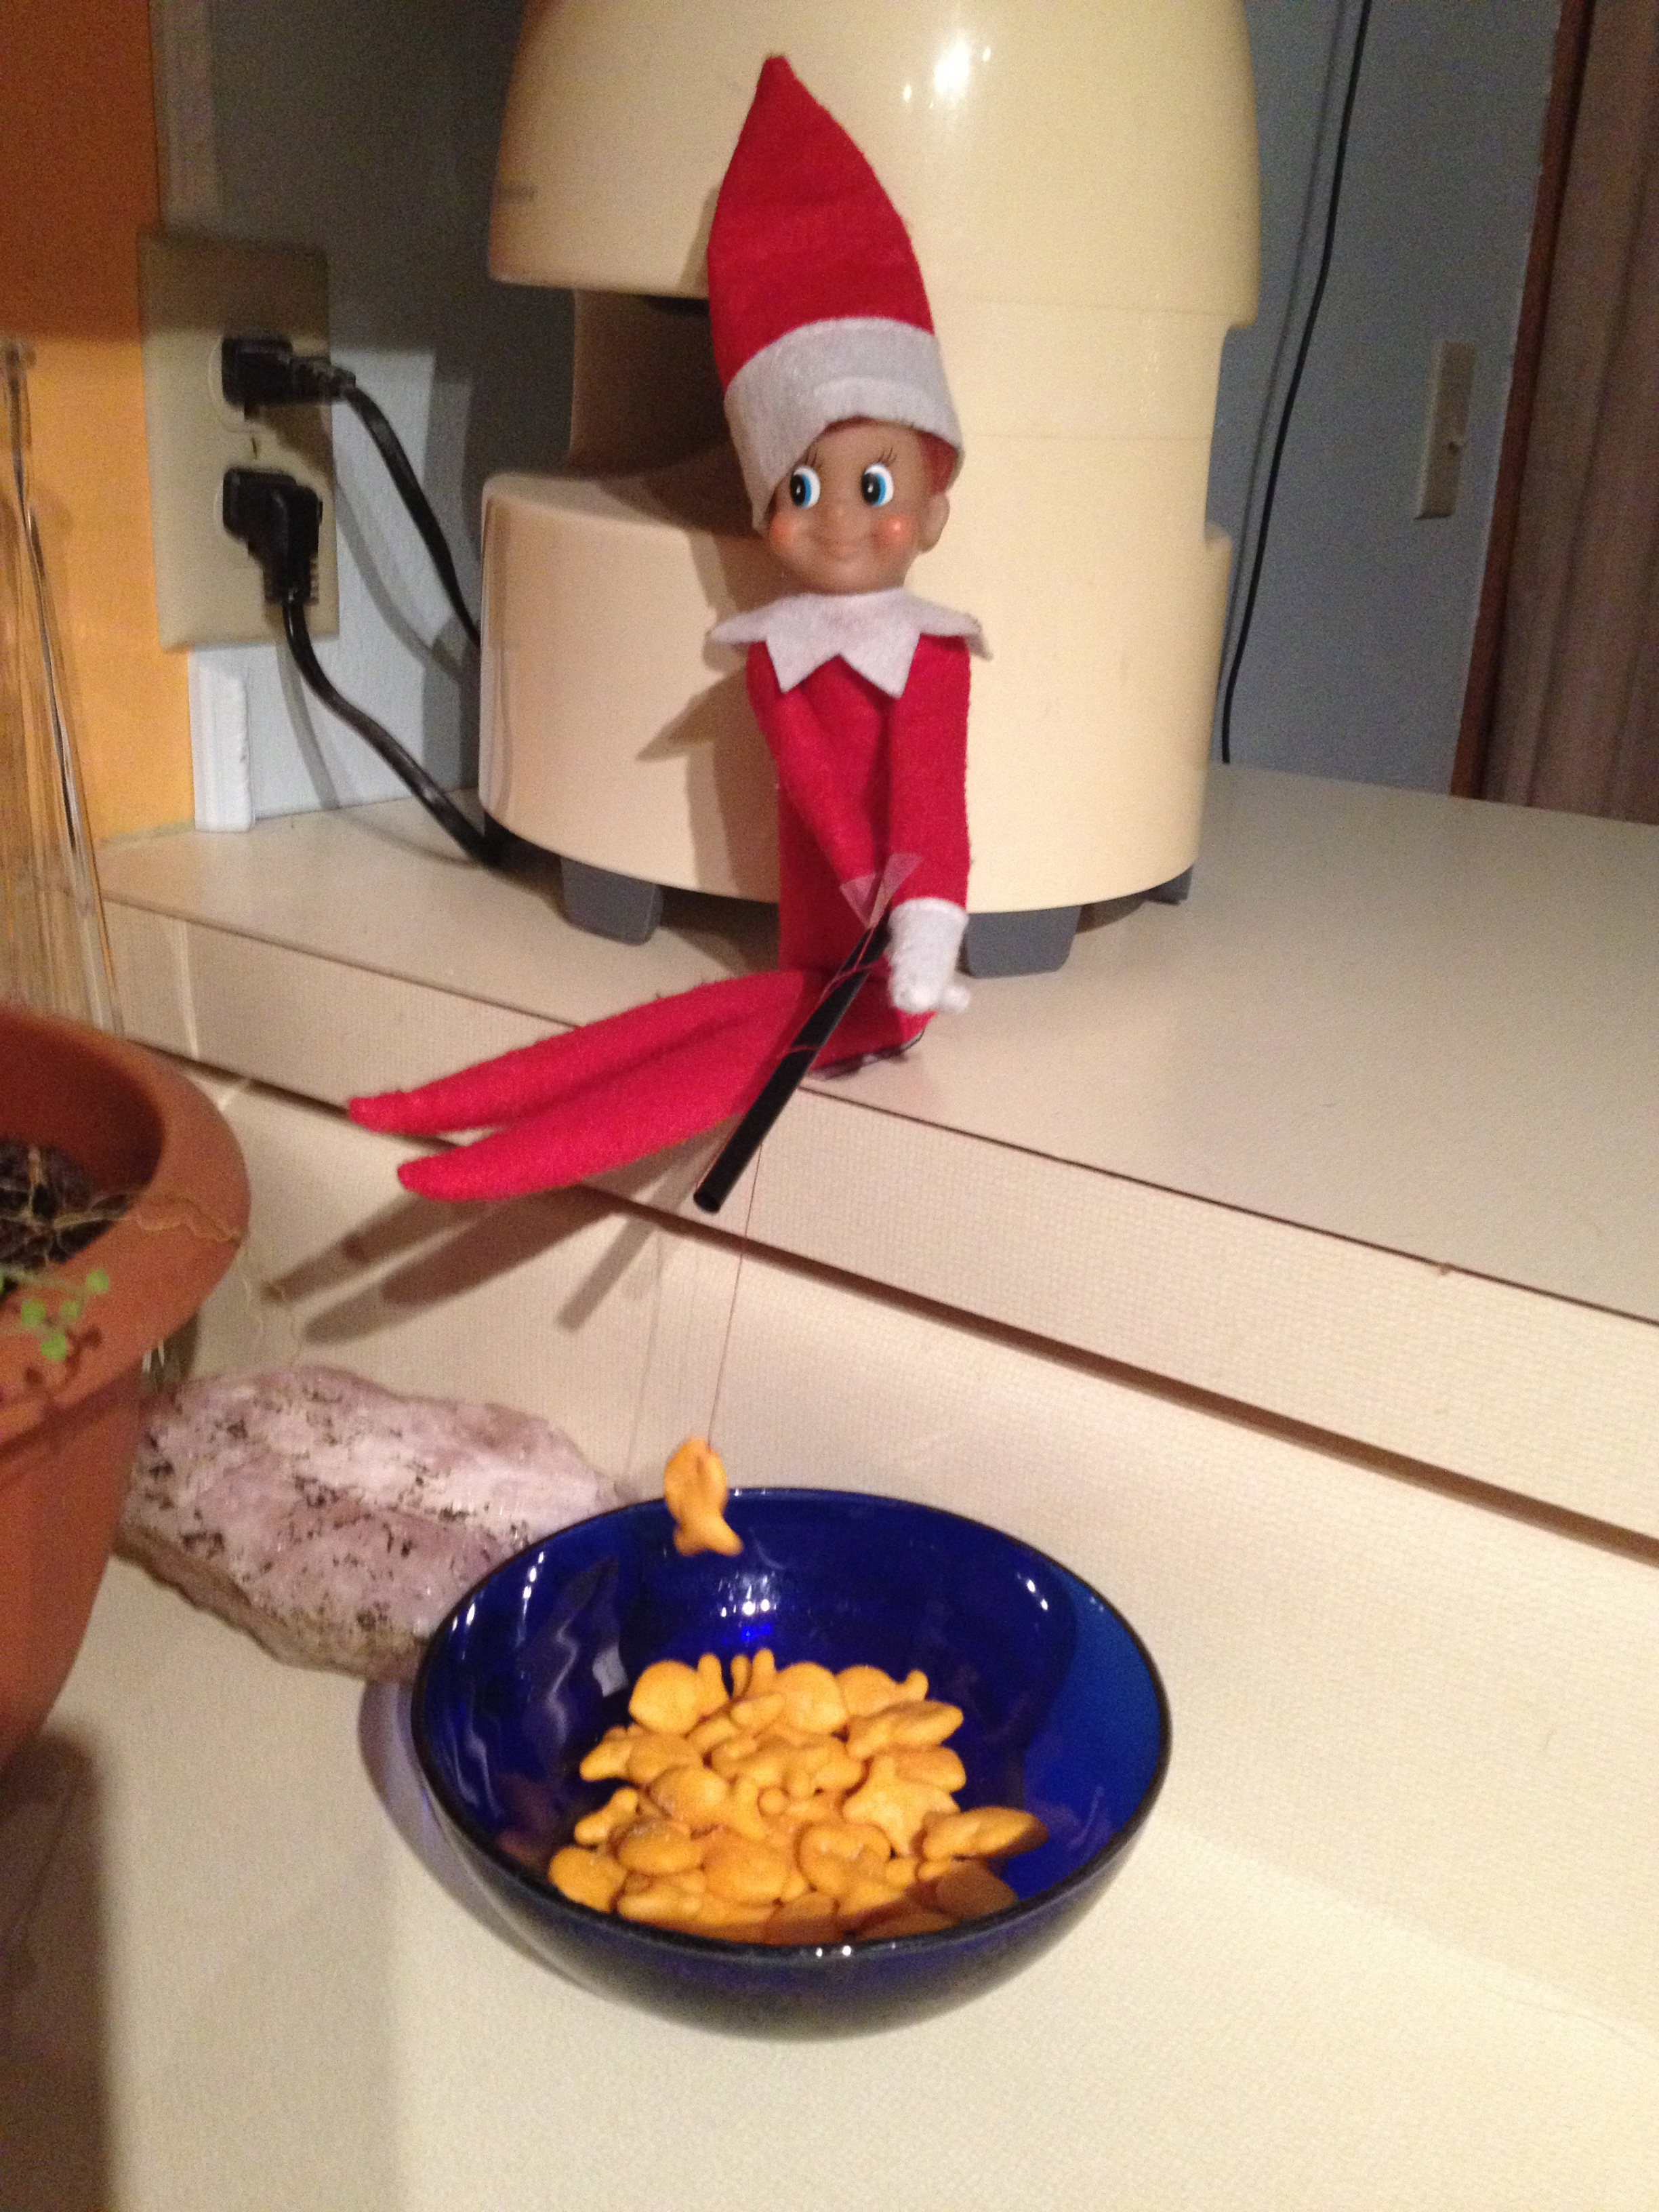 Elf on the shelf glory hole